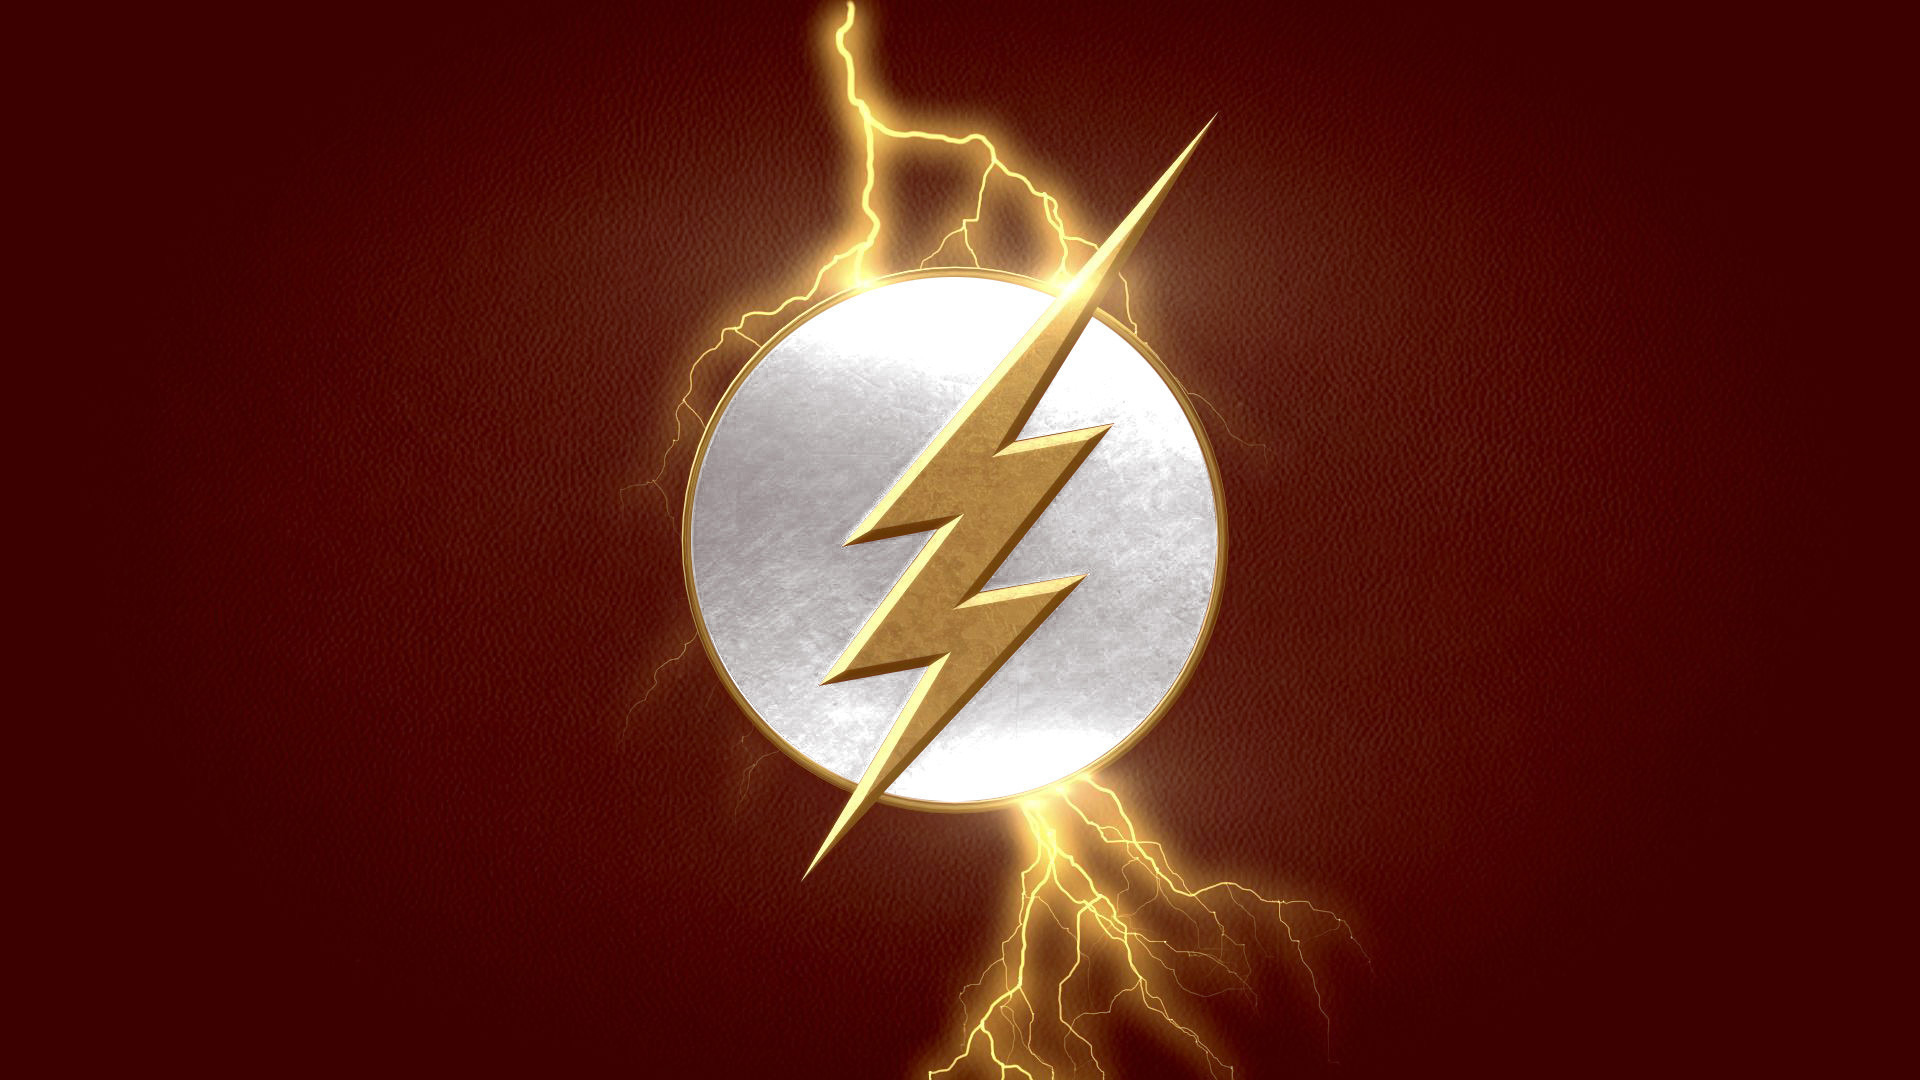 The Flash Wallpapers HD Group 1024×768 The Flash Wallpapers HD (38  Wallpapers)